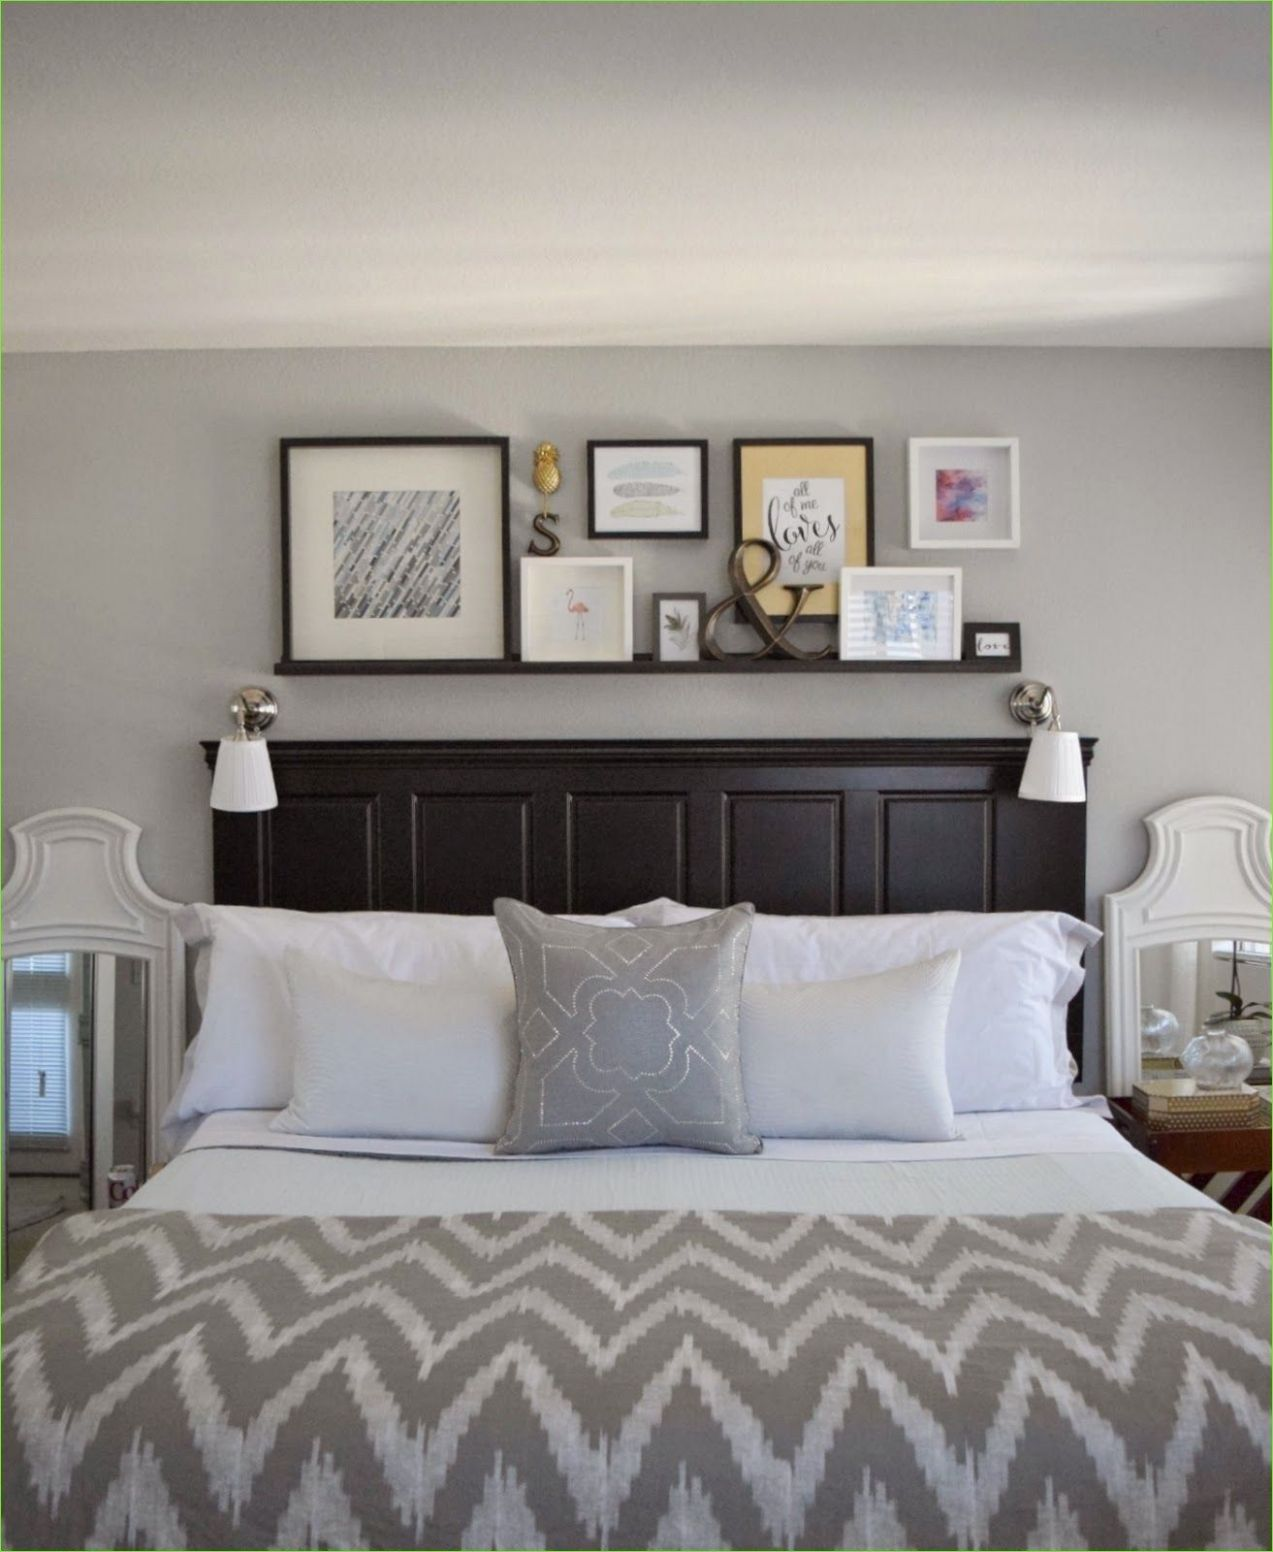 Pin on holiday decor - wall decor ideas behind bed